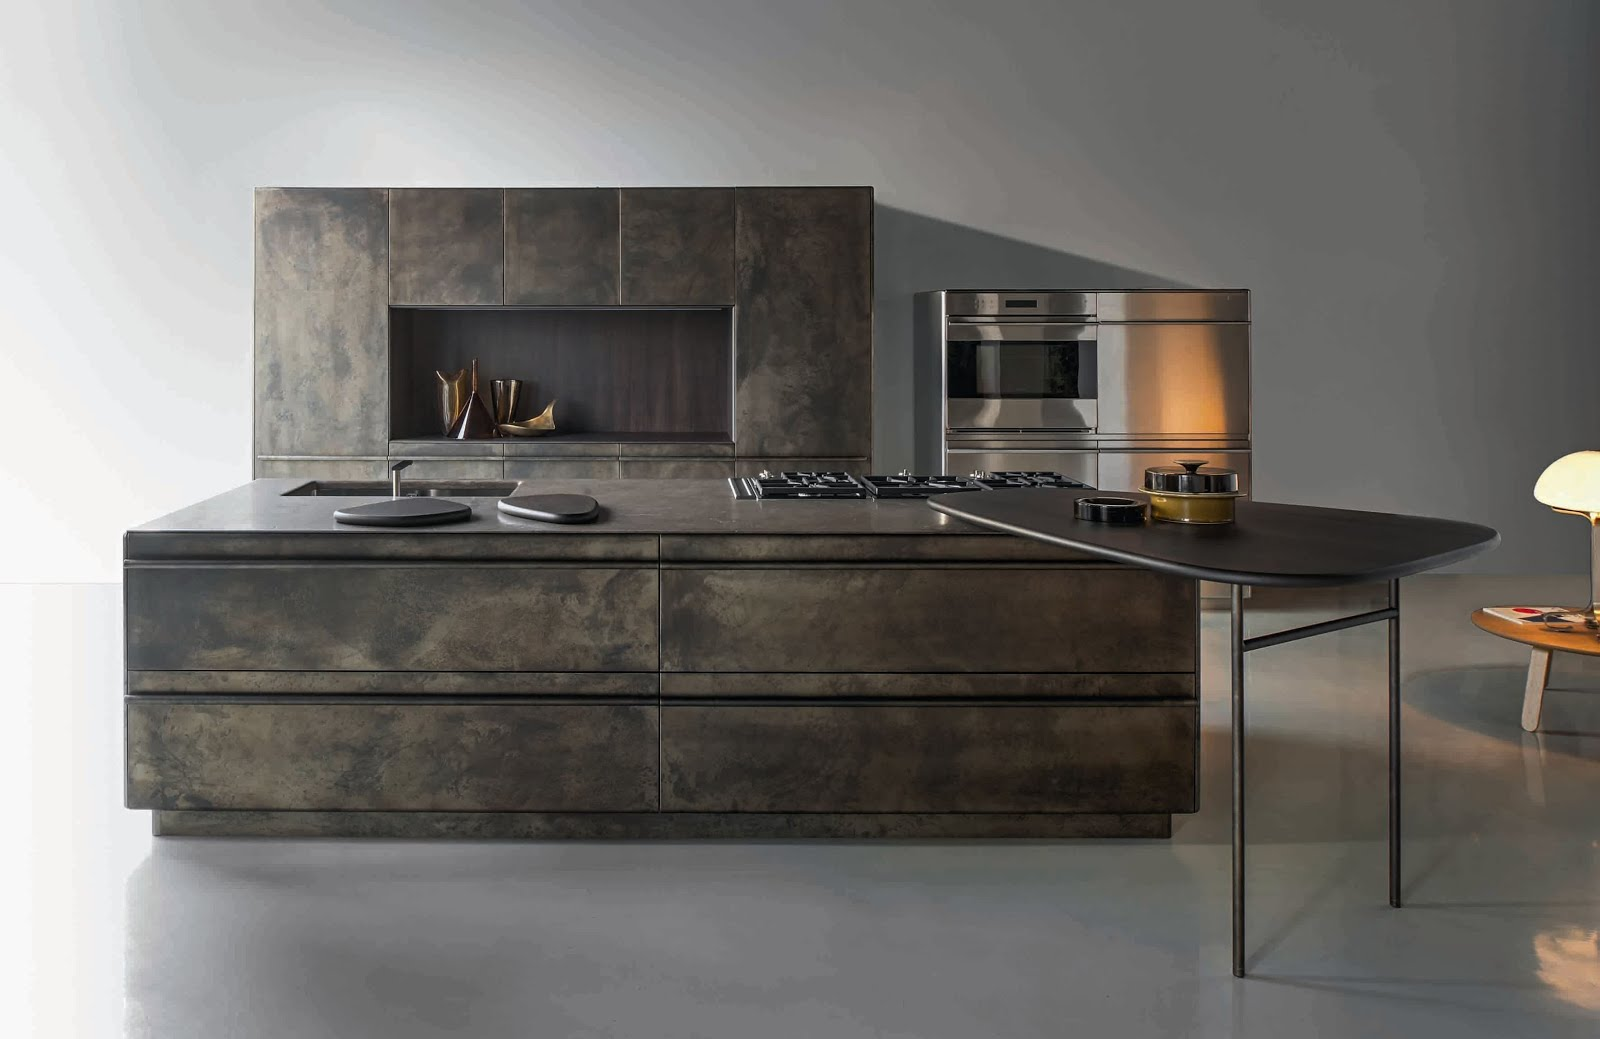 Arredo e design xera cucine novit 2016 for Arredo e design